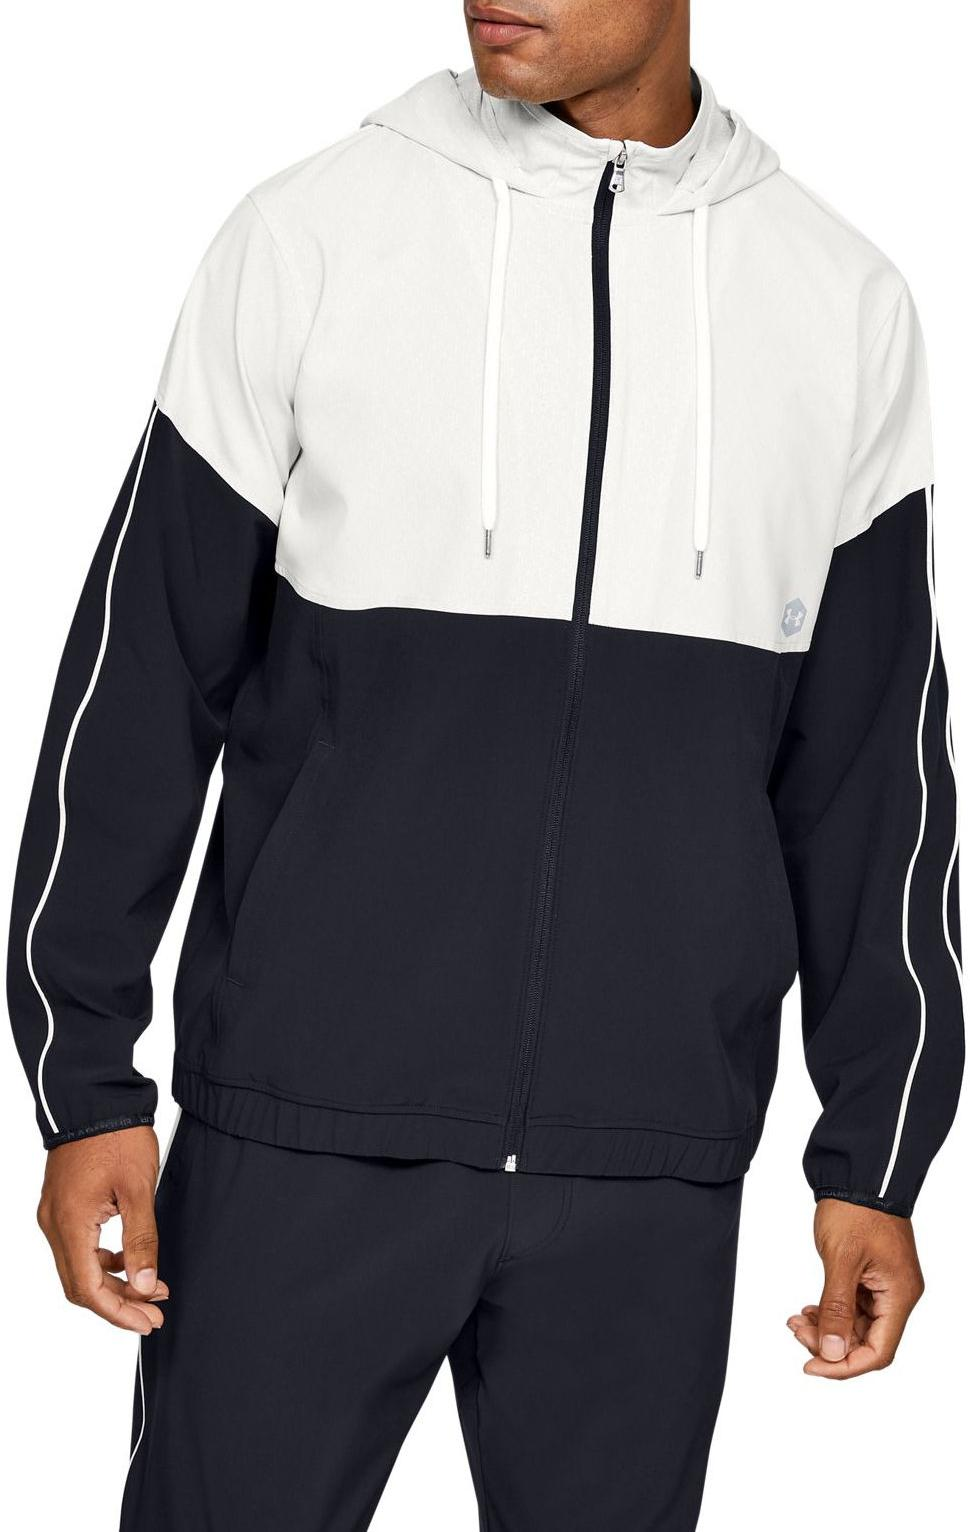 Sudadera con capucha Under Armour Athlete Recovery Woven Warm Up Top